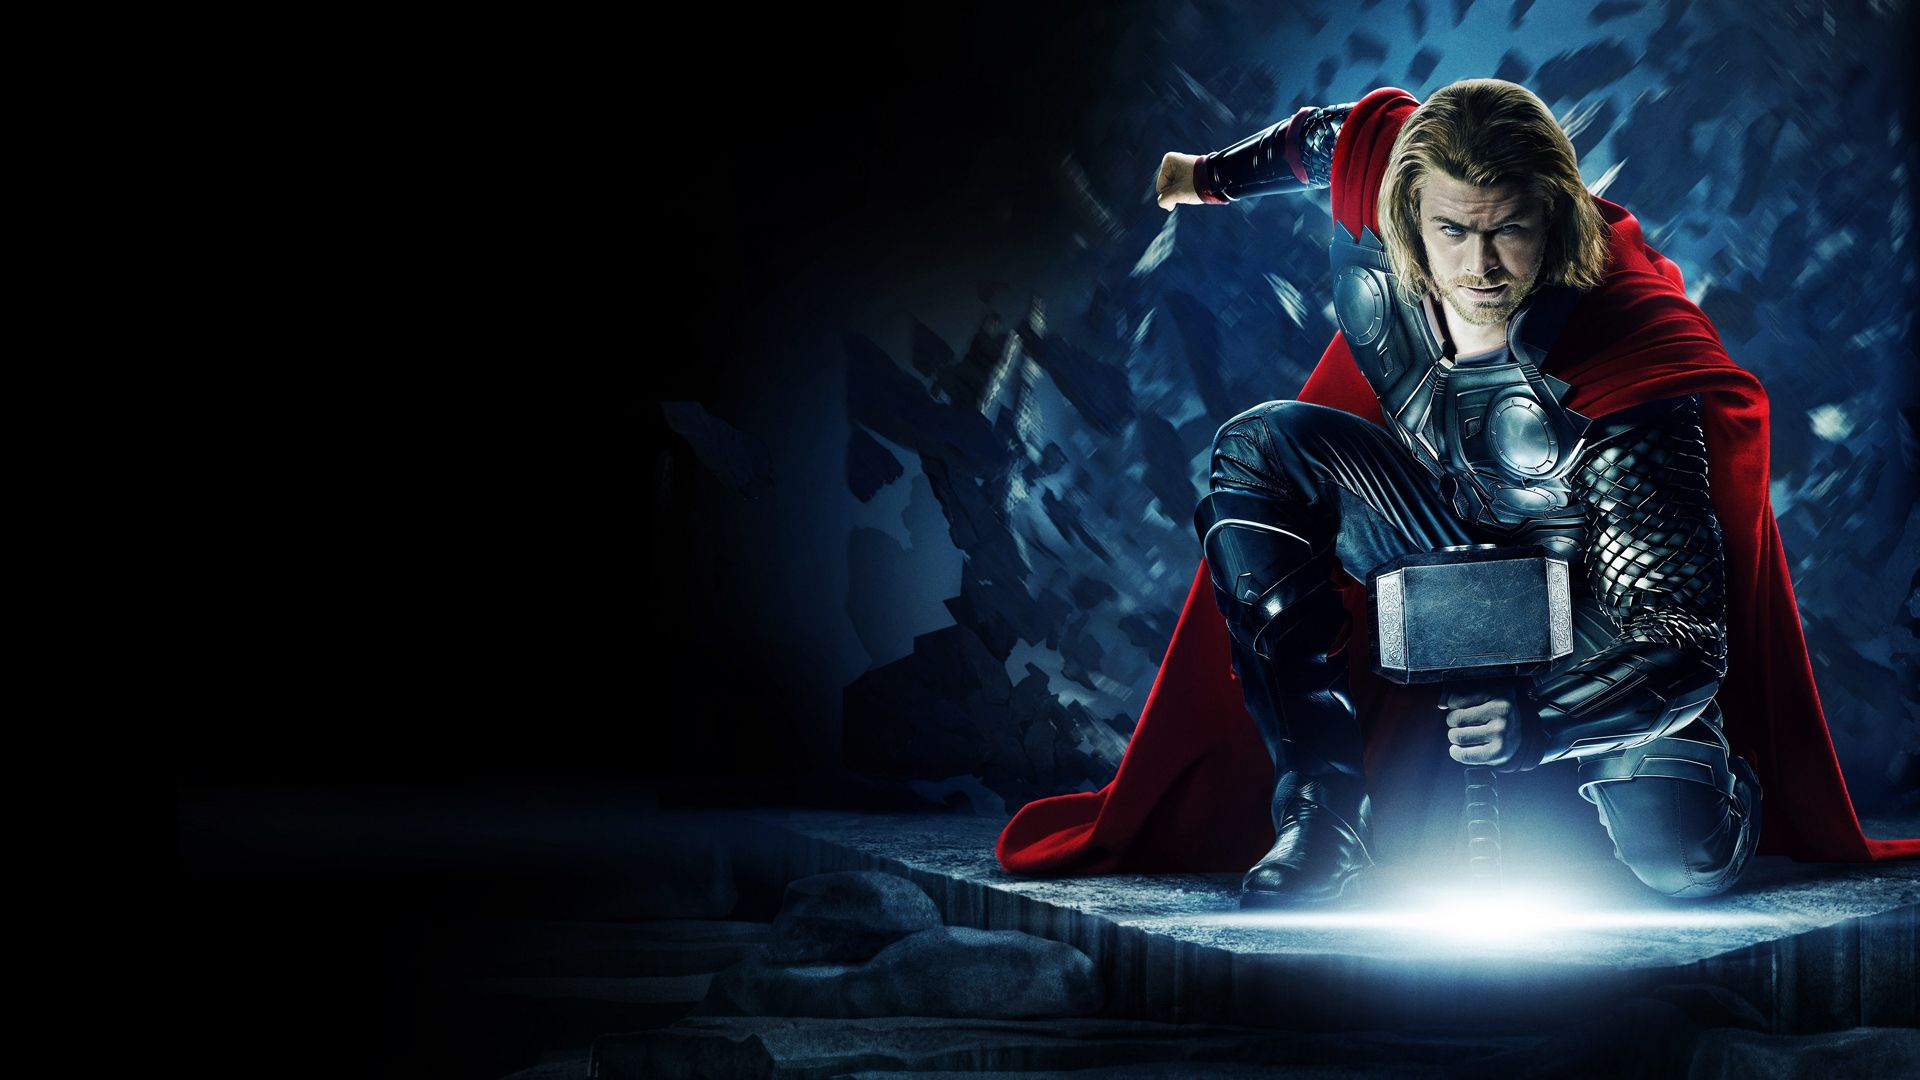 hd wallpapers super herois - photo #38